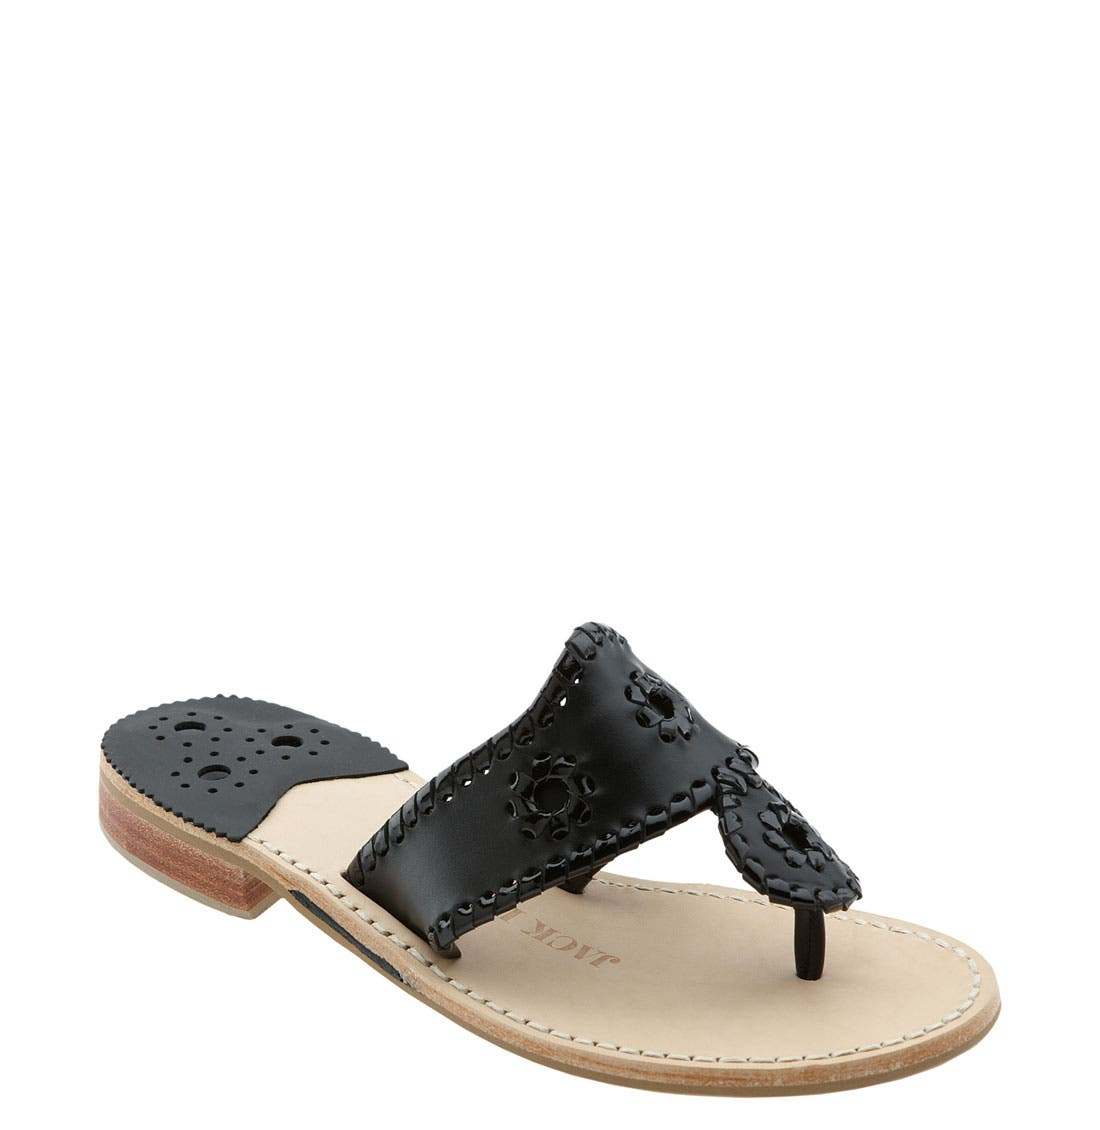 JACK ROGERS Palm Beach Whipstitch Thong Sandal in Black Black Patent